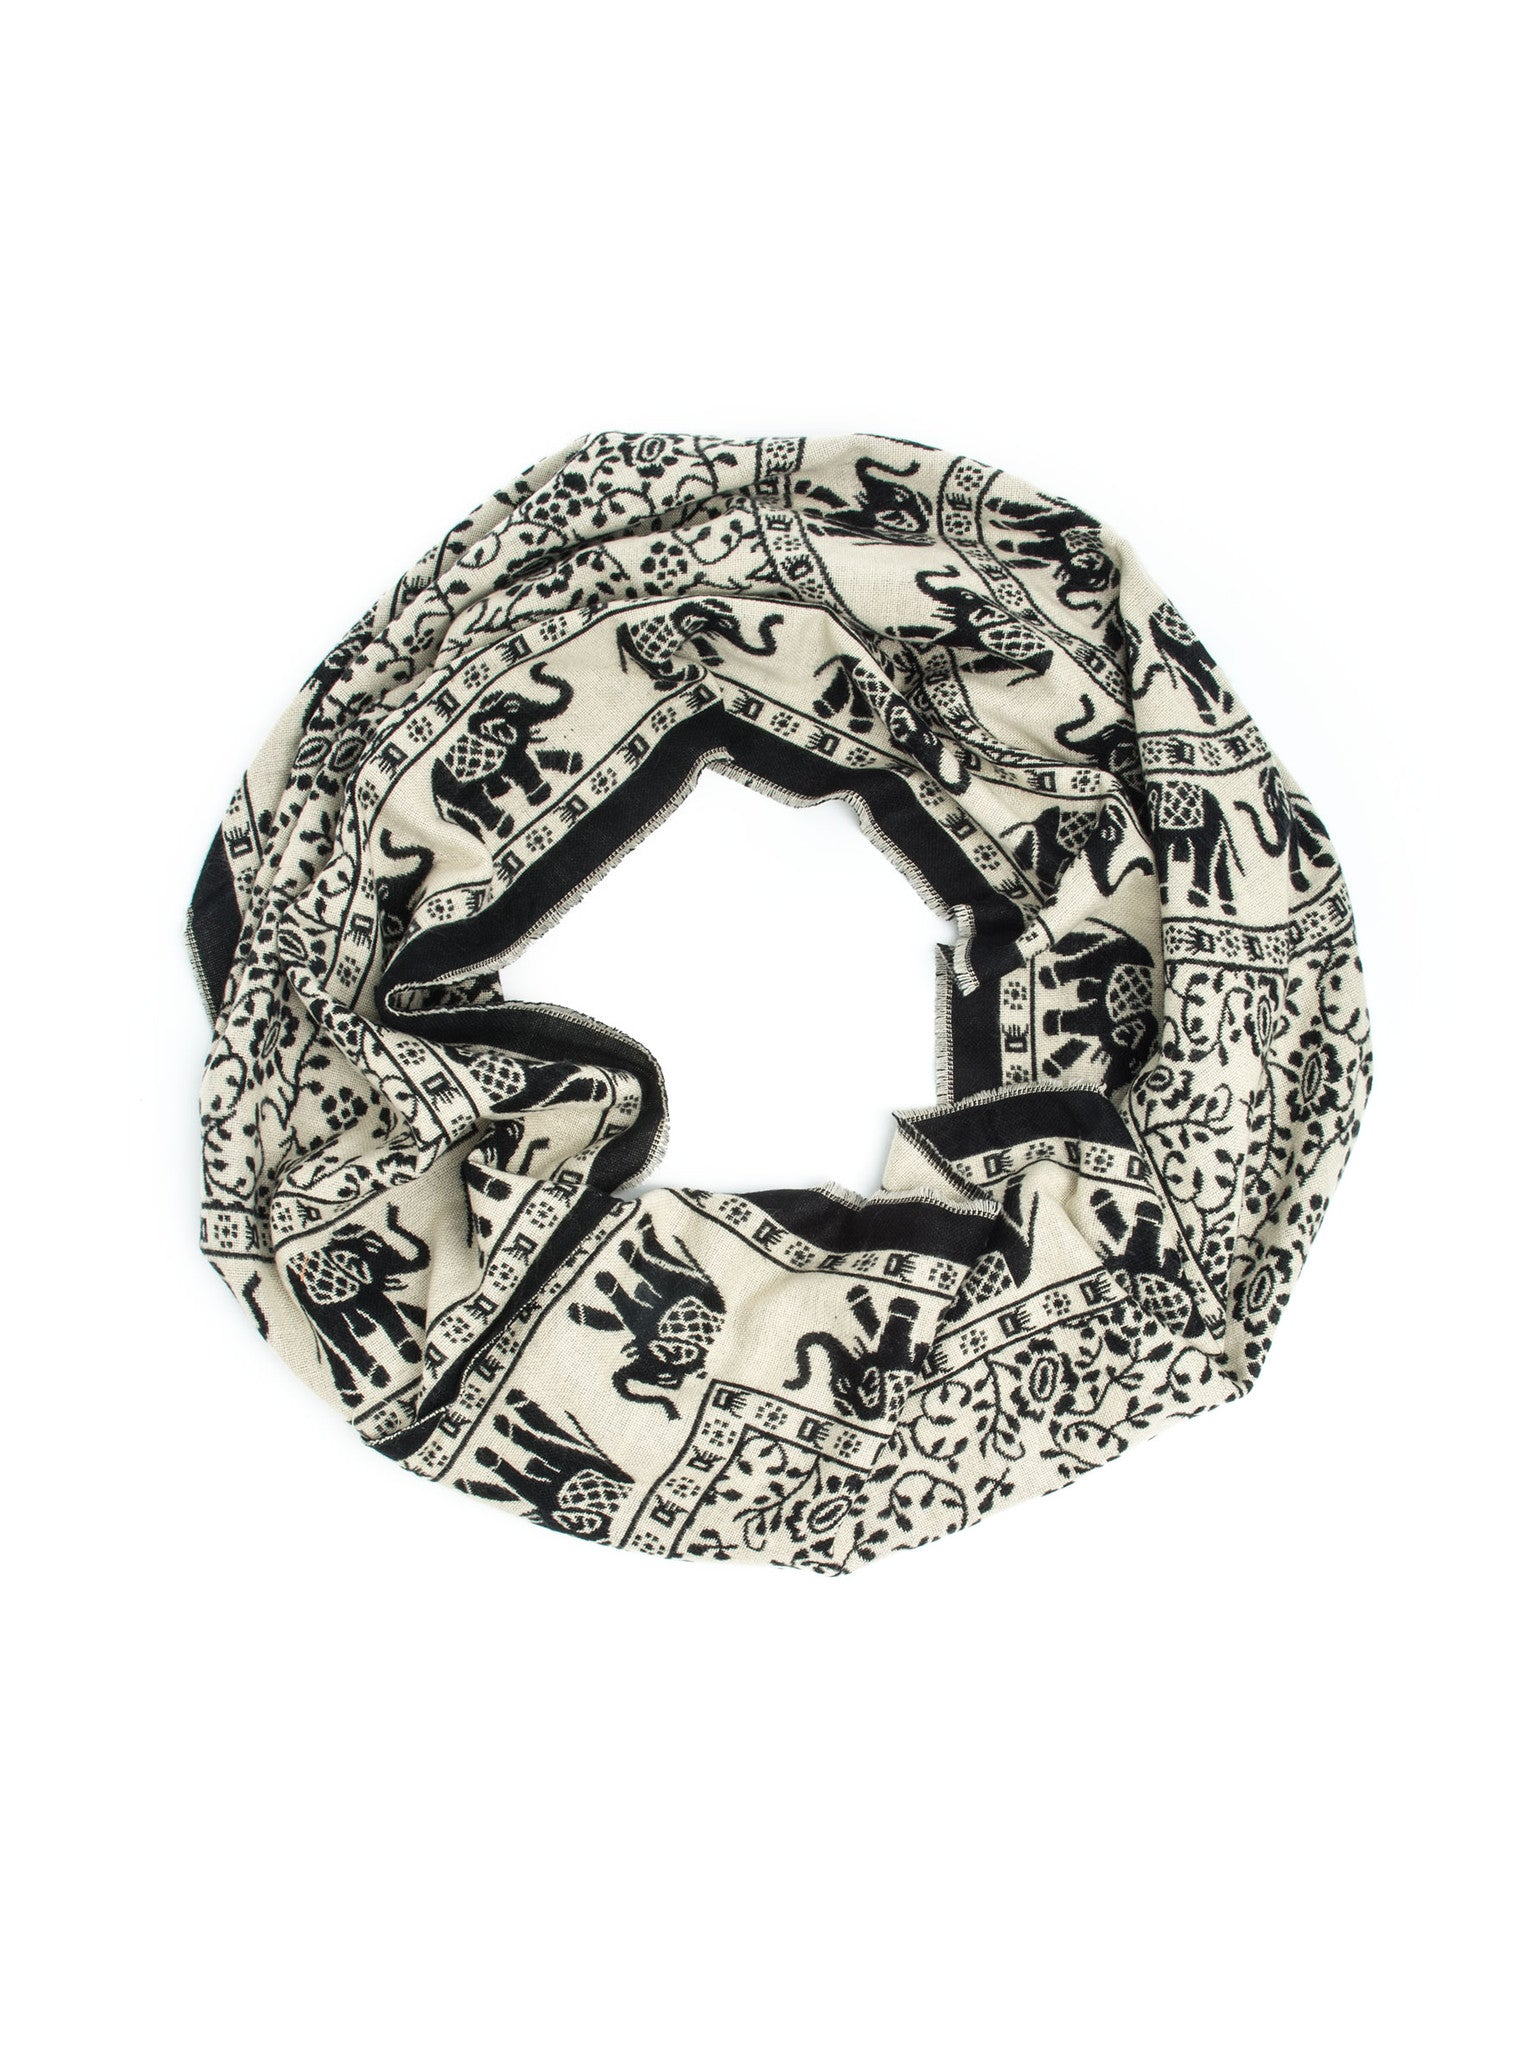 Scarves - Hathi Winter Infinity Scarf, Blanket Scarf, Indian Elephant Design -() Bohomonde  - 10